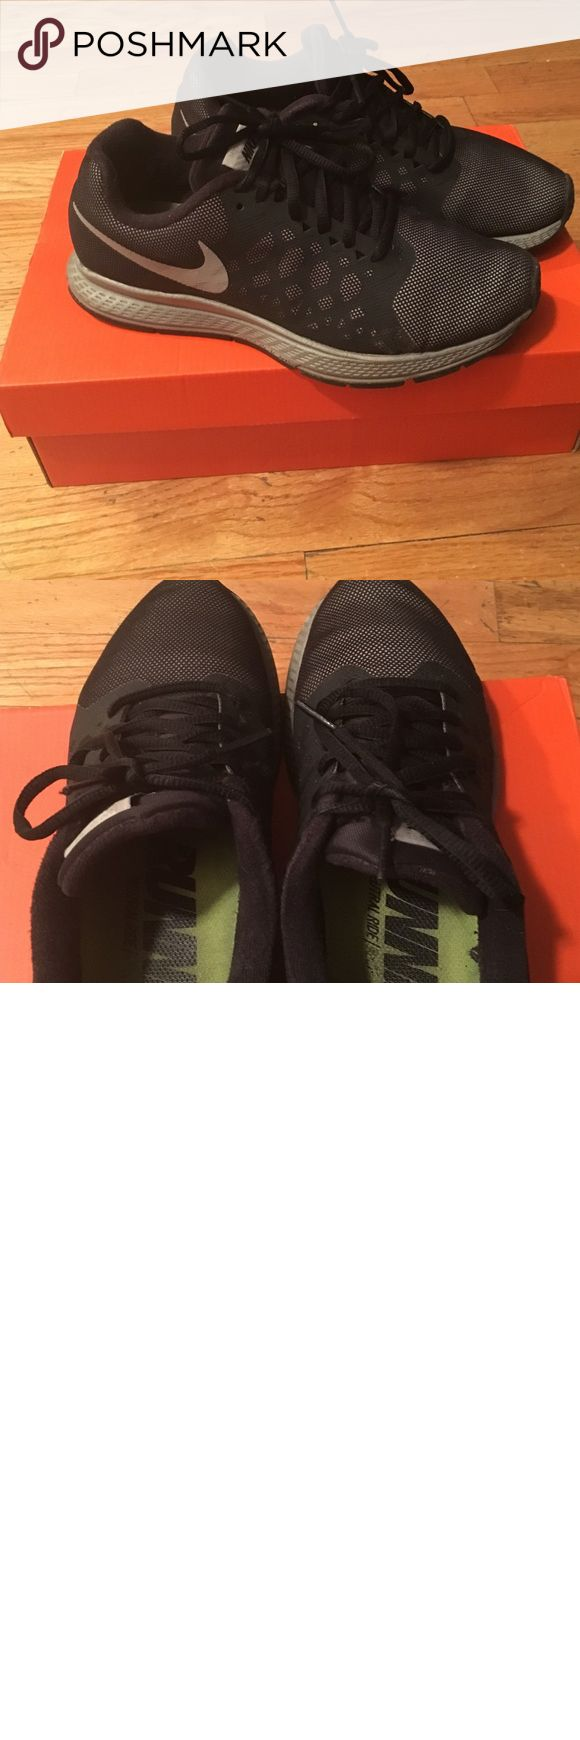 Nike Womans Pegasus Black and grey Nike Pegasus womans size 7 in excellent condition only been worn a couple of times. The inside label is a little worn but they still in wonderful condition. These shoes are water repellant and very comfortable! Nike Shoes Athletic Shoes